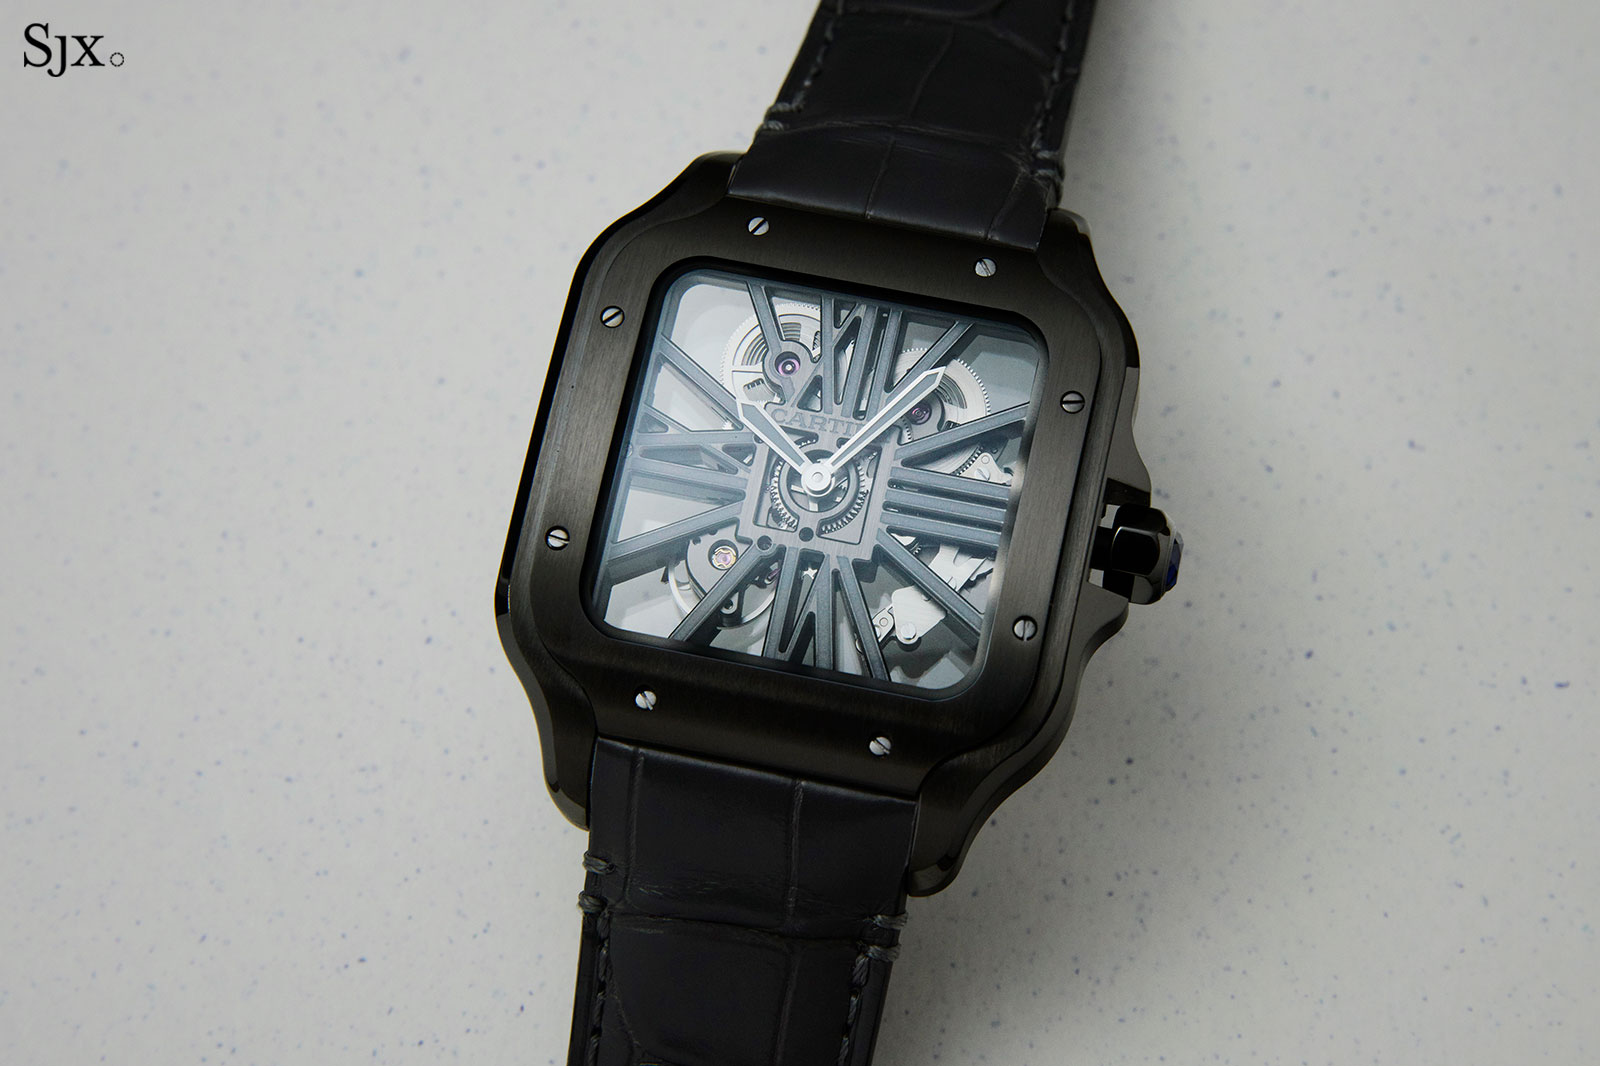 Cartier Santos Skeleton ADLC Noctambule watch 1